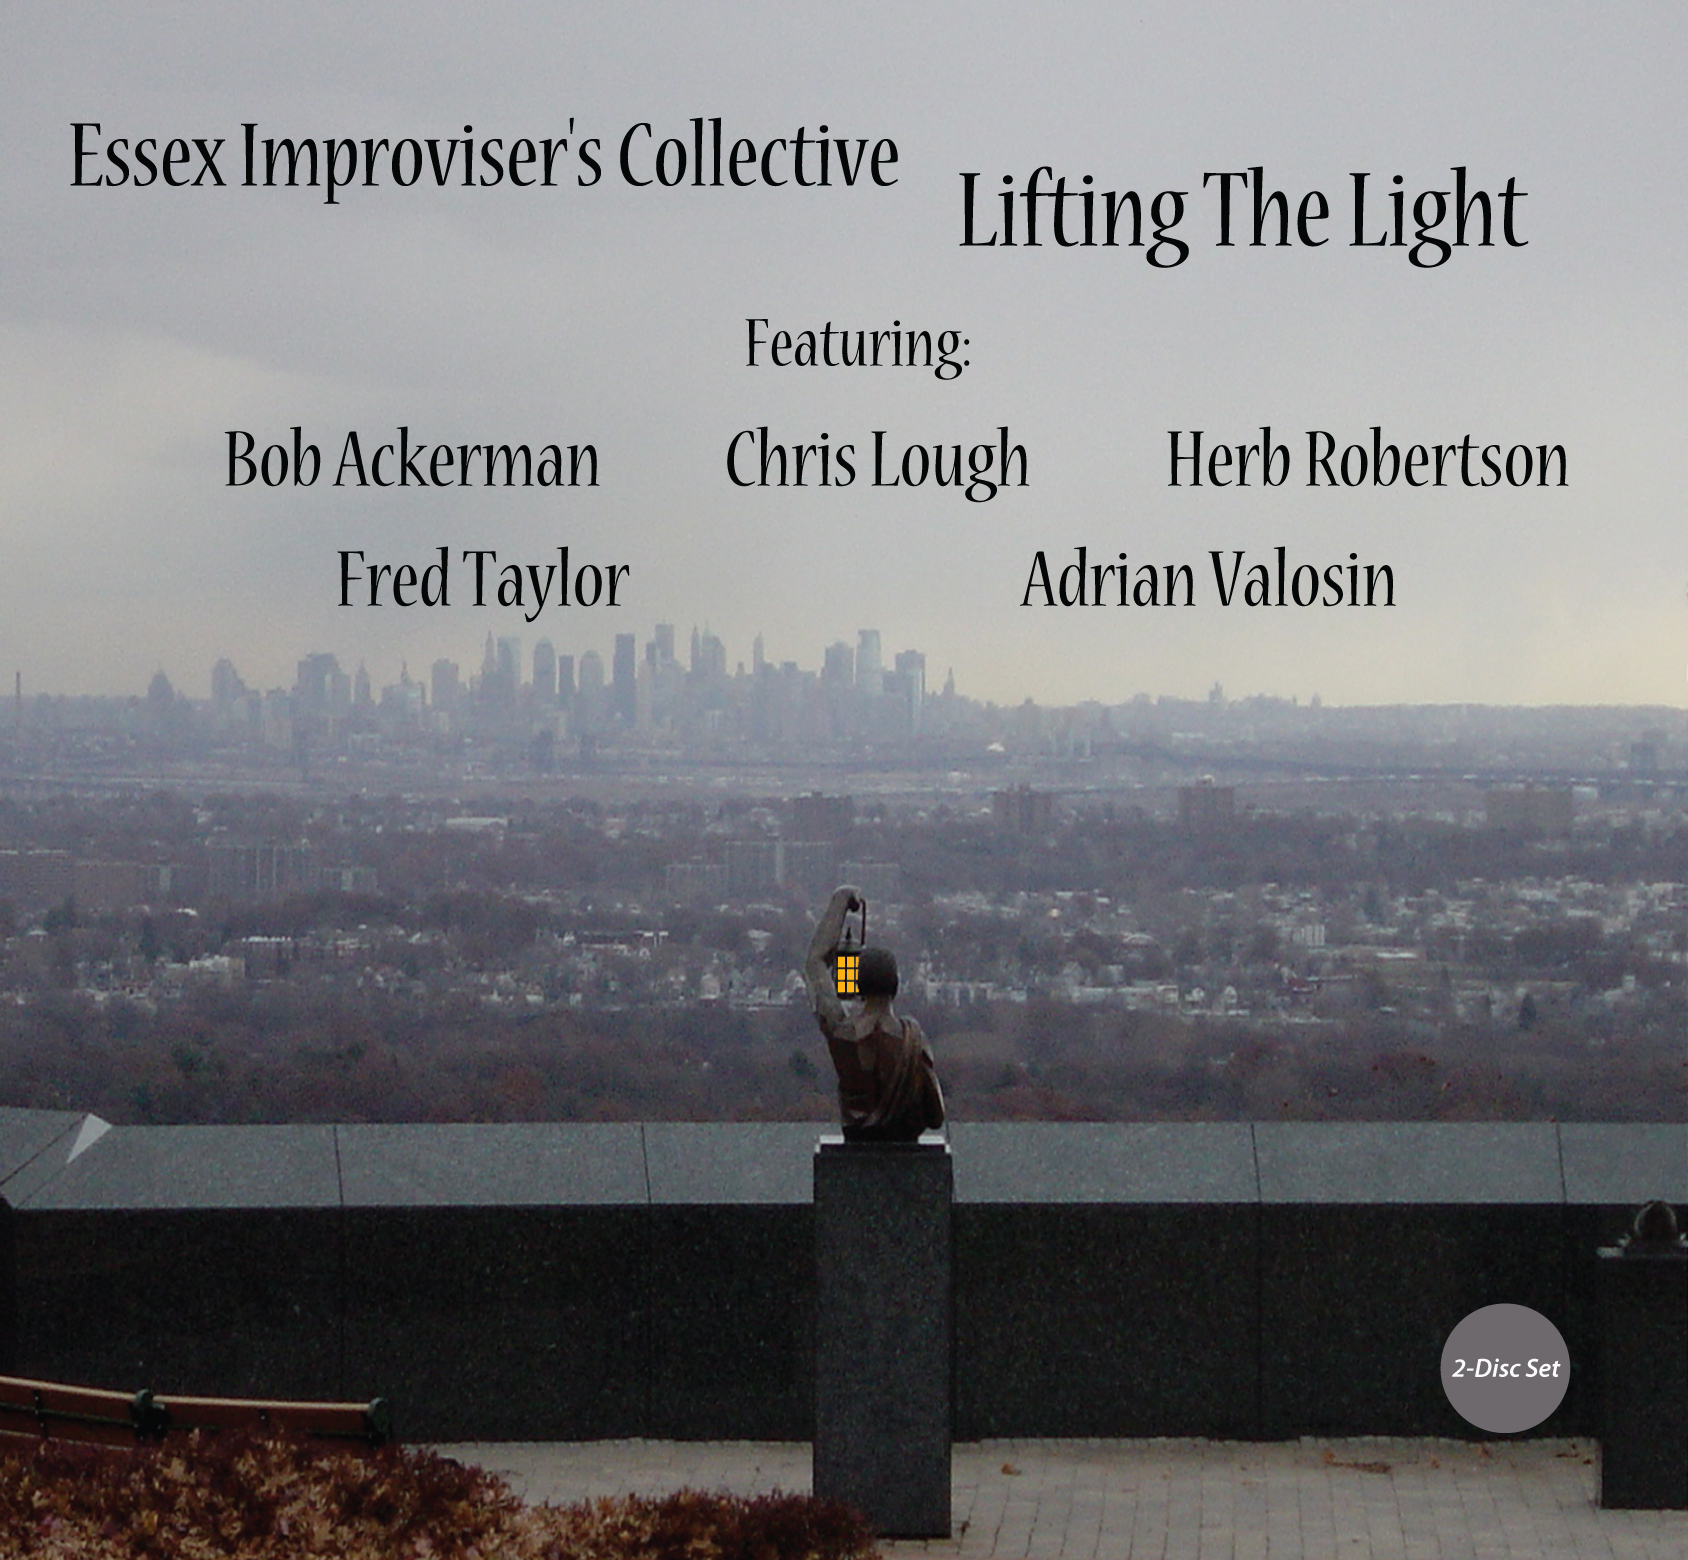 Album Essex Improviser's Collective - Lifting The Light by Fred Taylor